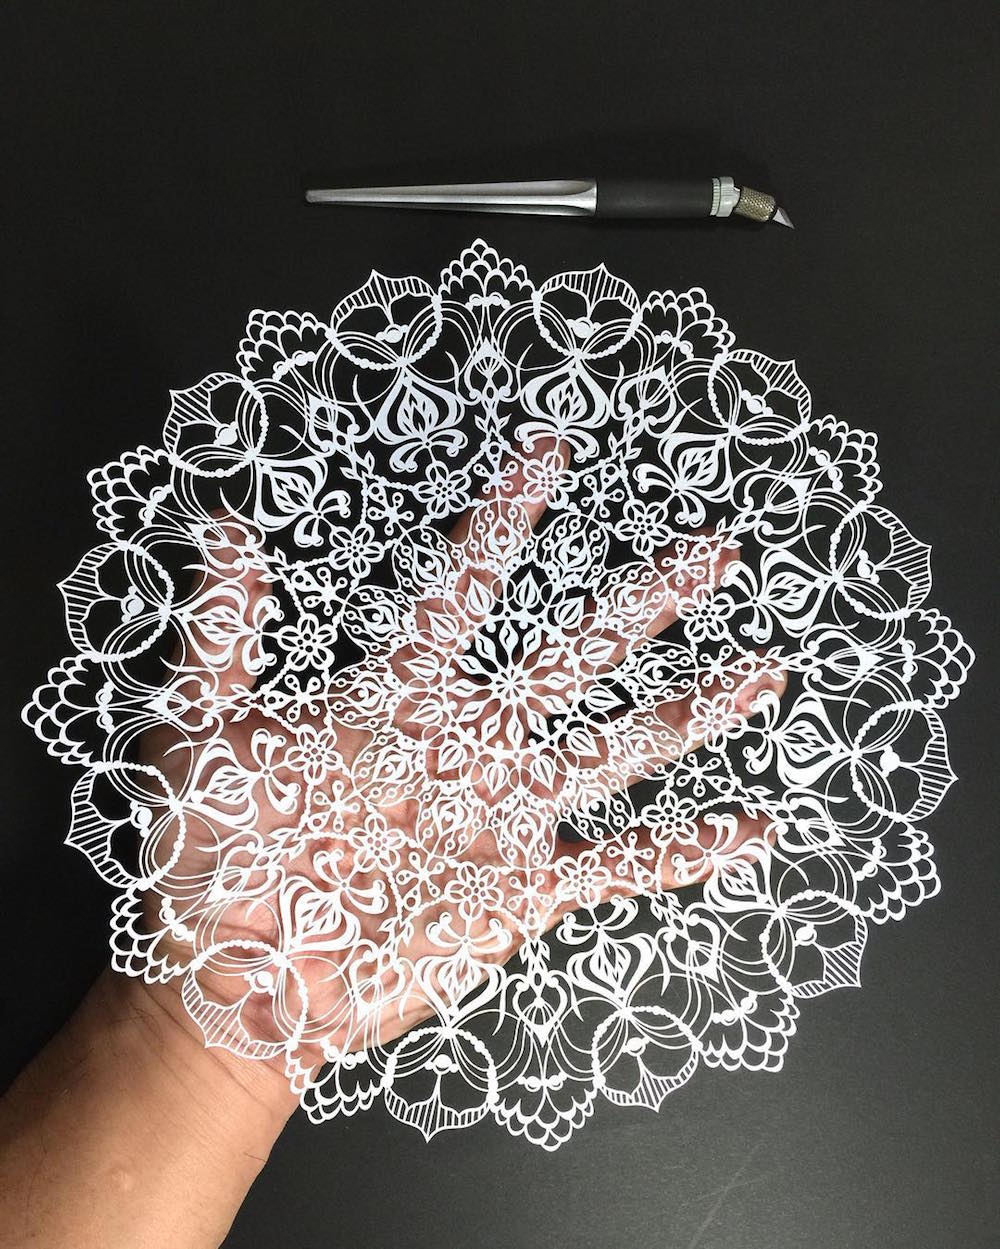 All images via @mr_riu Japanese artist Mr. Riu takes paper cutting to an intricate extreme, craftin